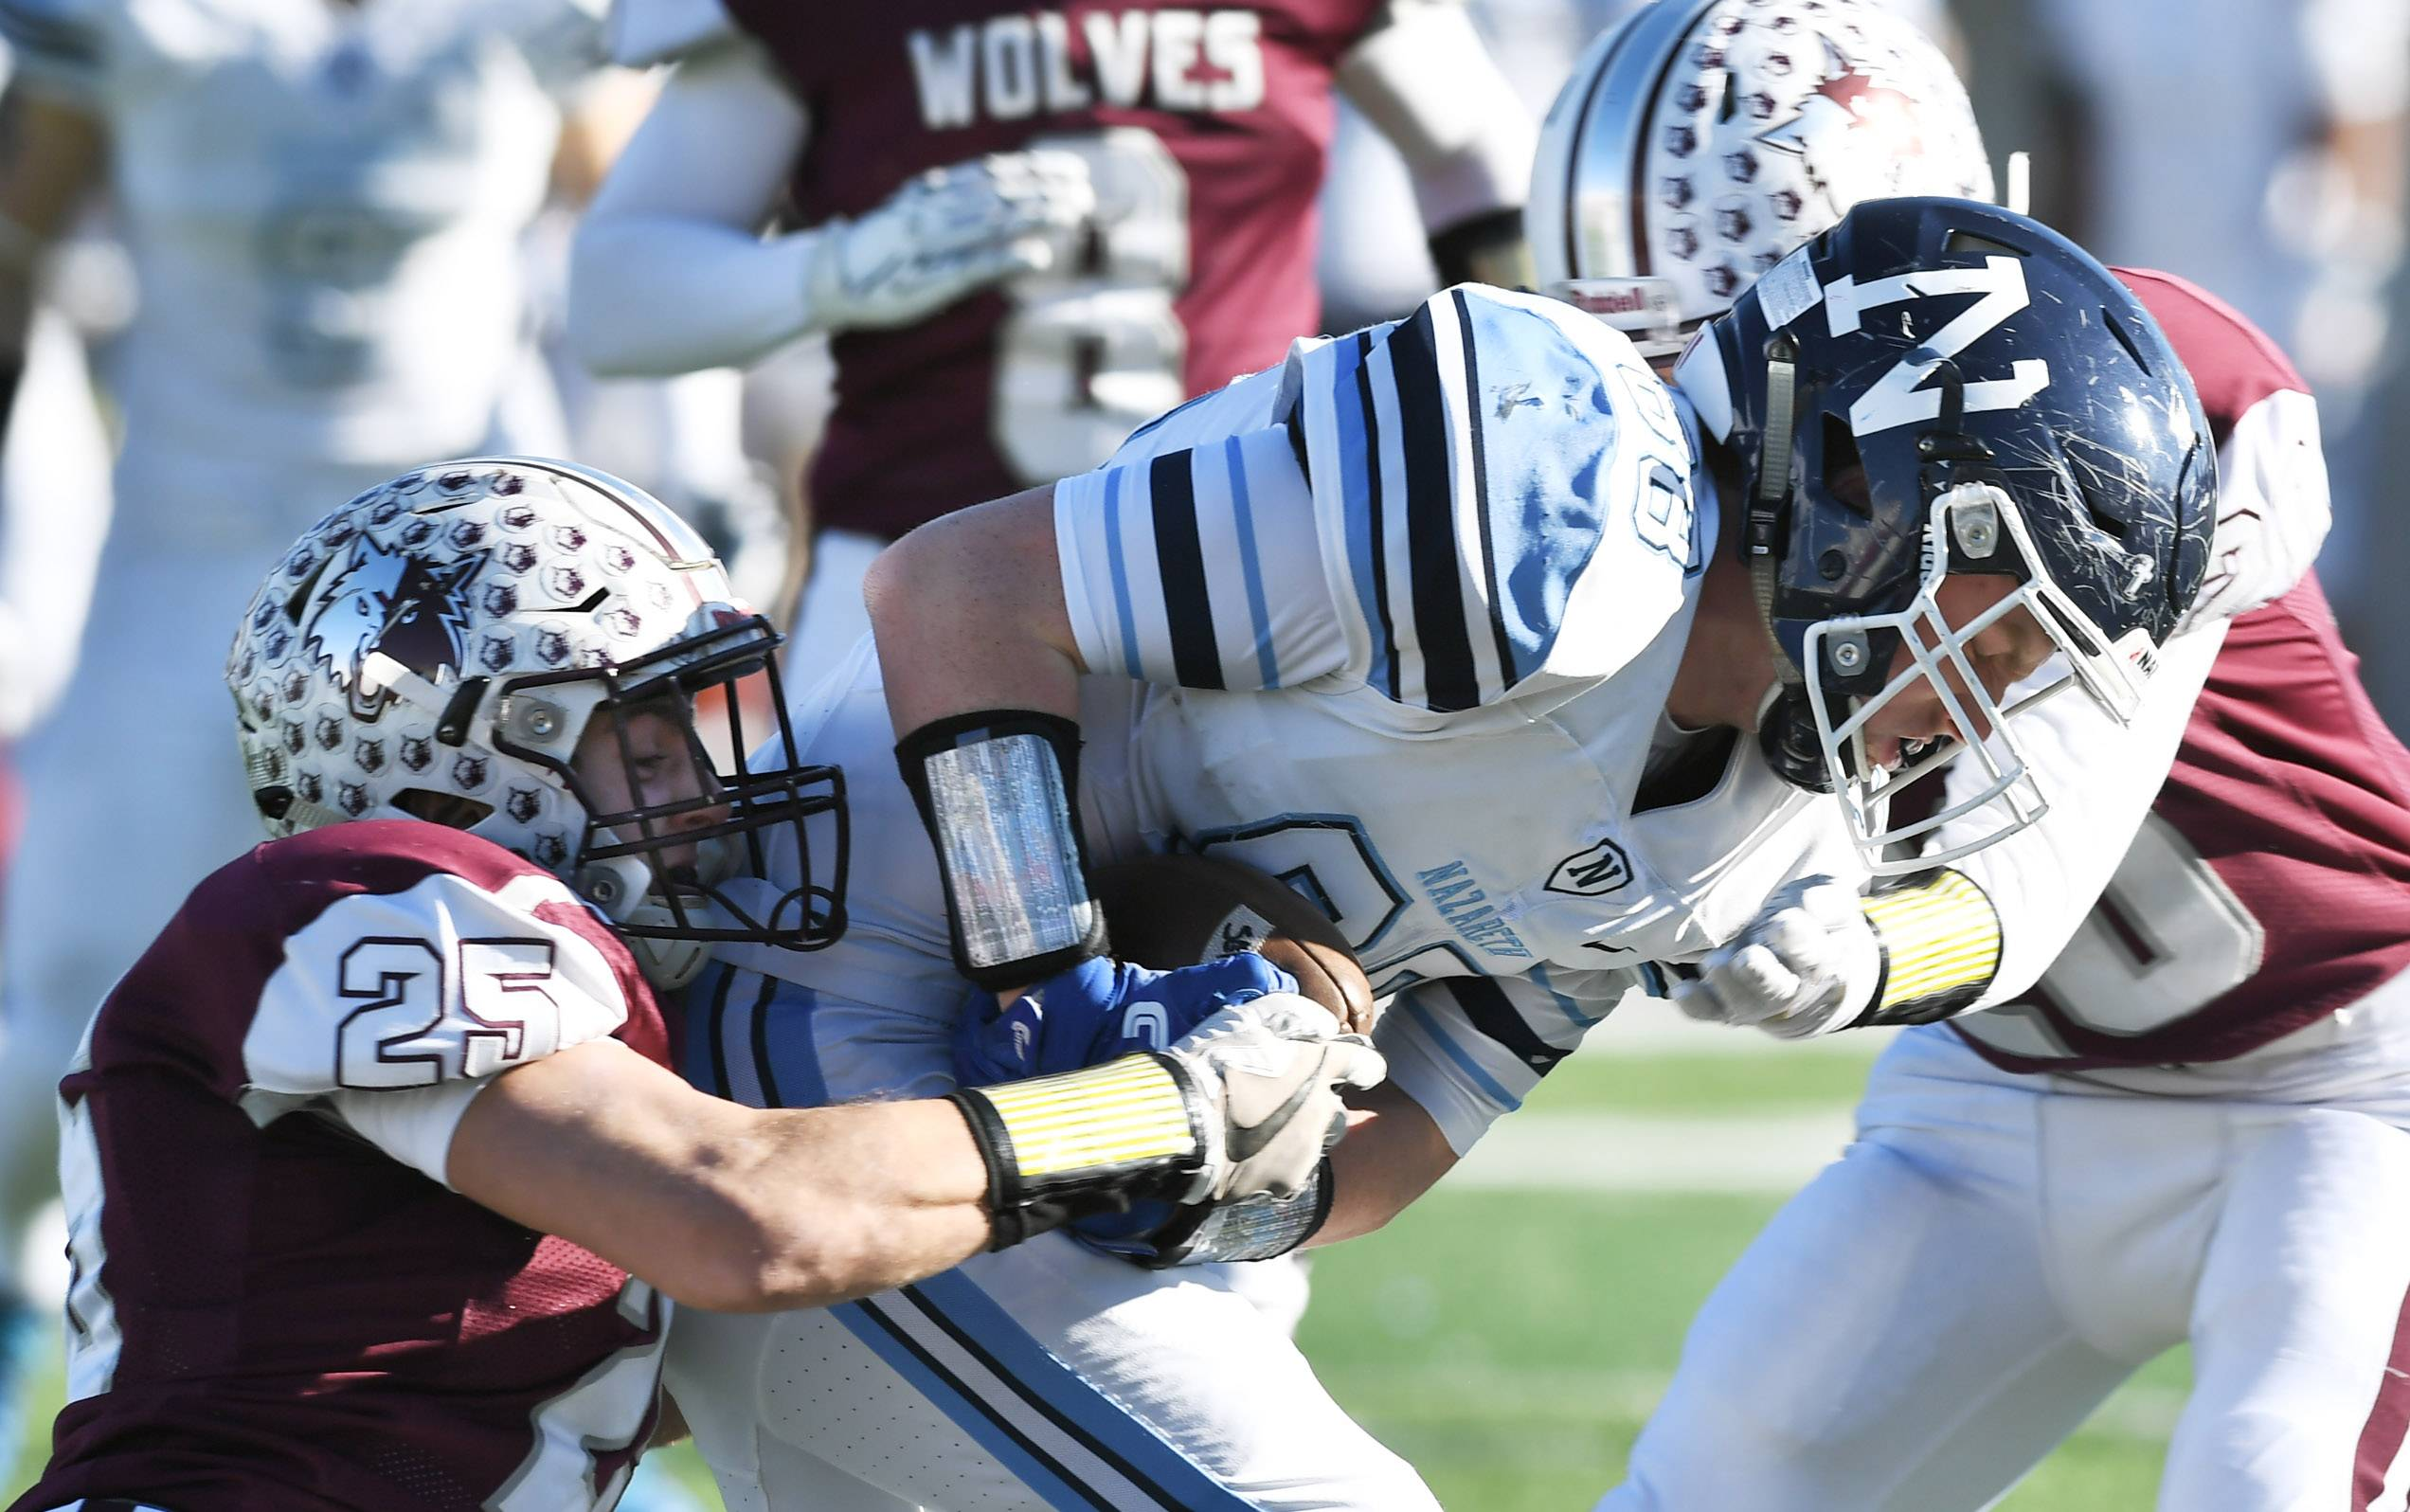 Prairie Ridge's Jacob Ommen, left, and Justin Mikolajczewski tackle Nazareth's Jack Gloor during the Class 6A championship game at Huskie Stadium in DeKalb Saturday.